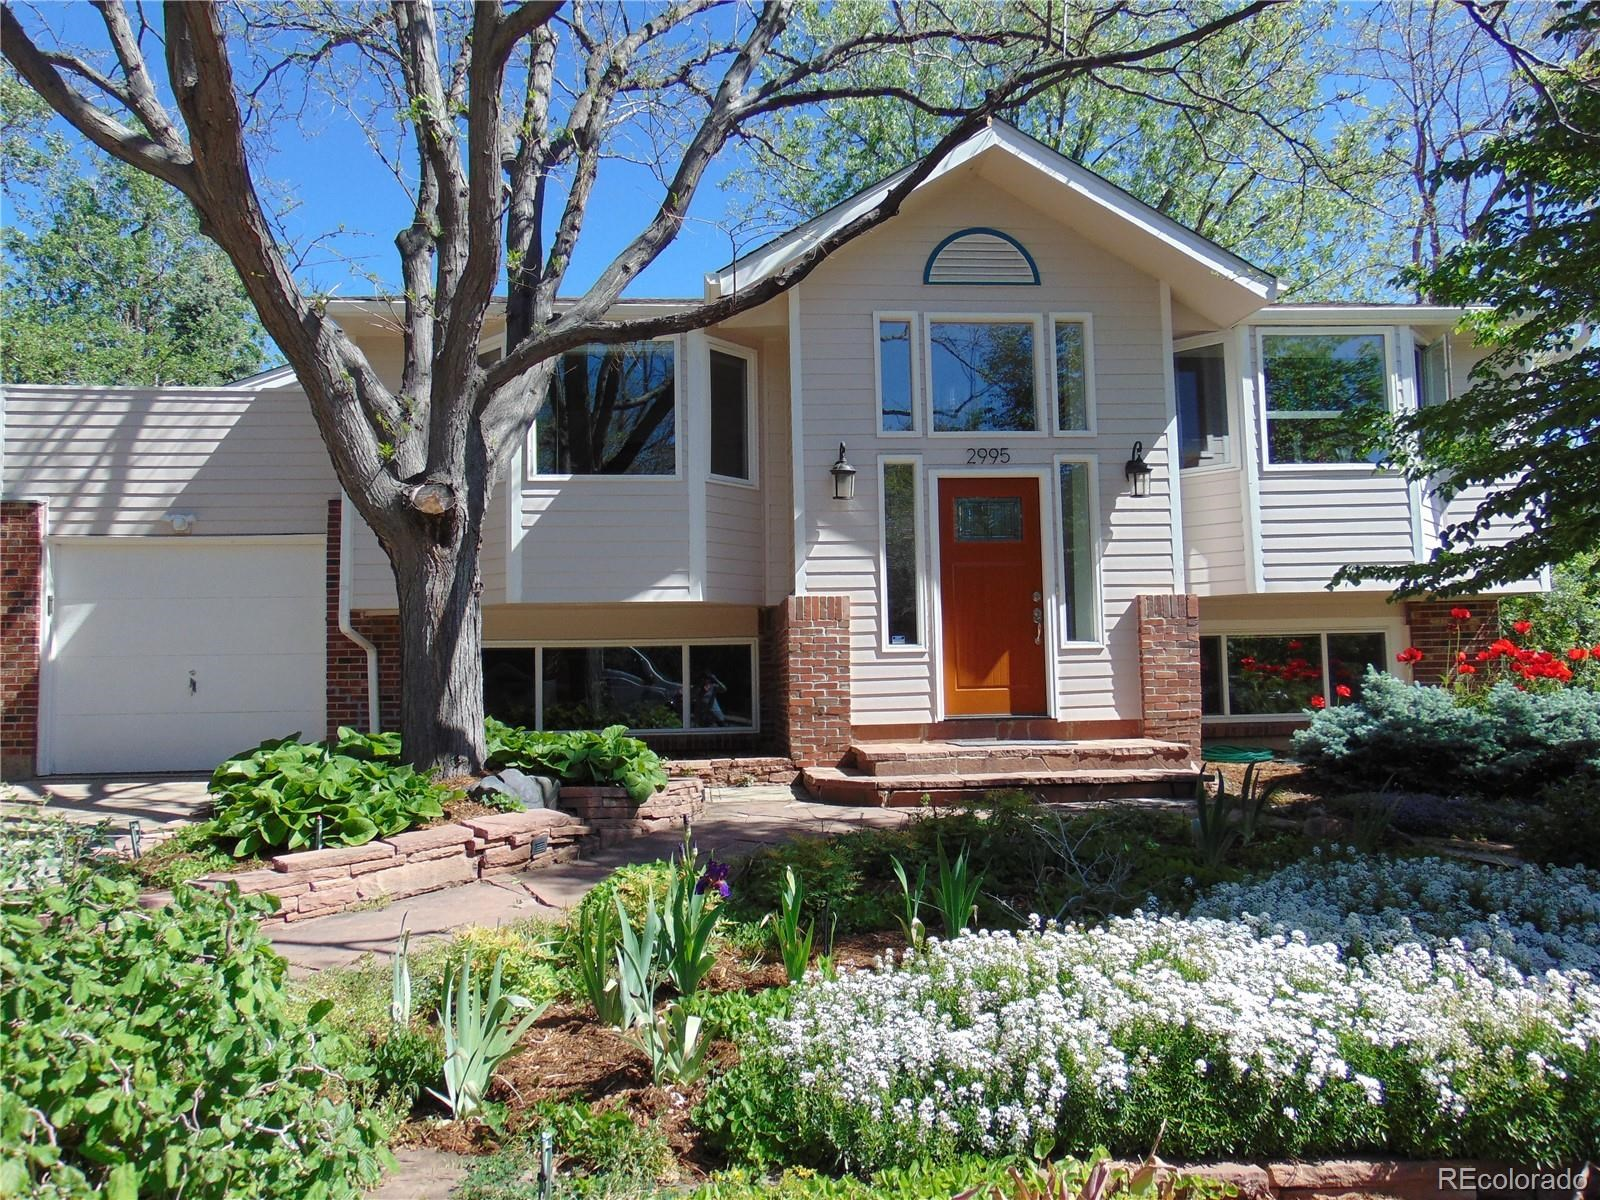 MLS# 9743318 - 1 - 2995 Darley Avenue, Boulder, CO 80304